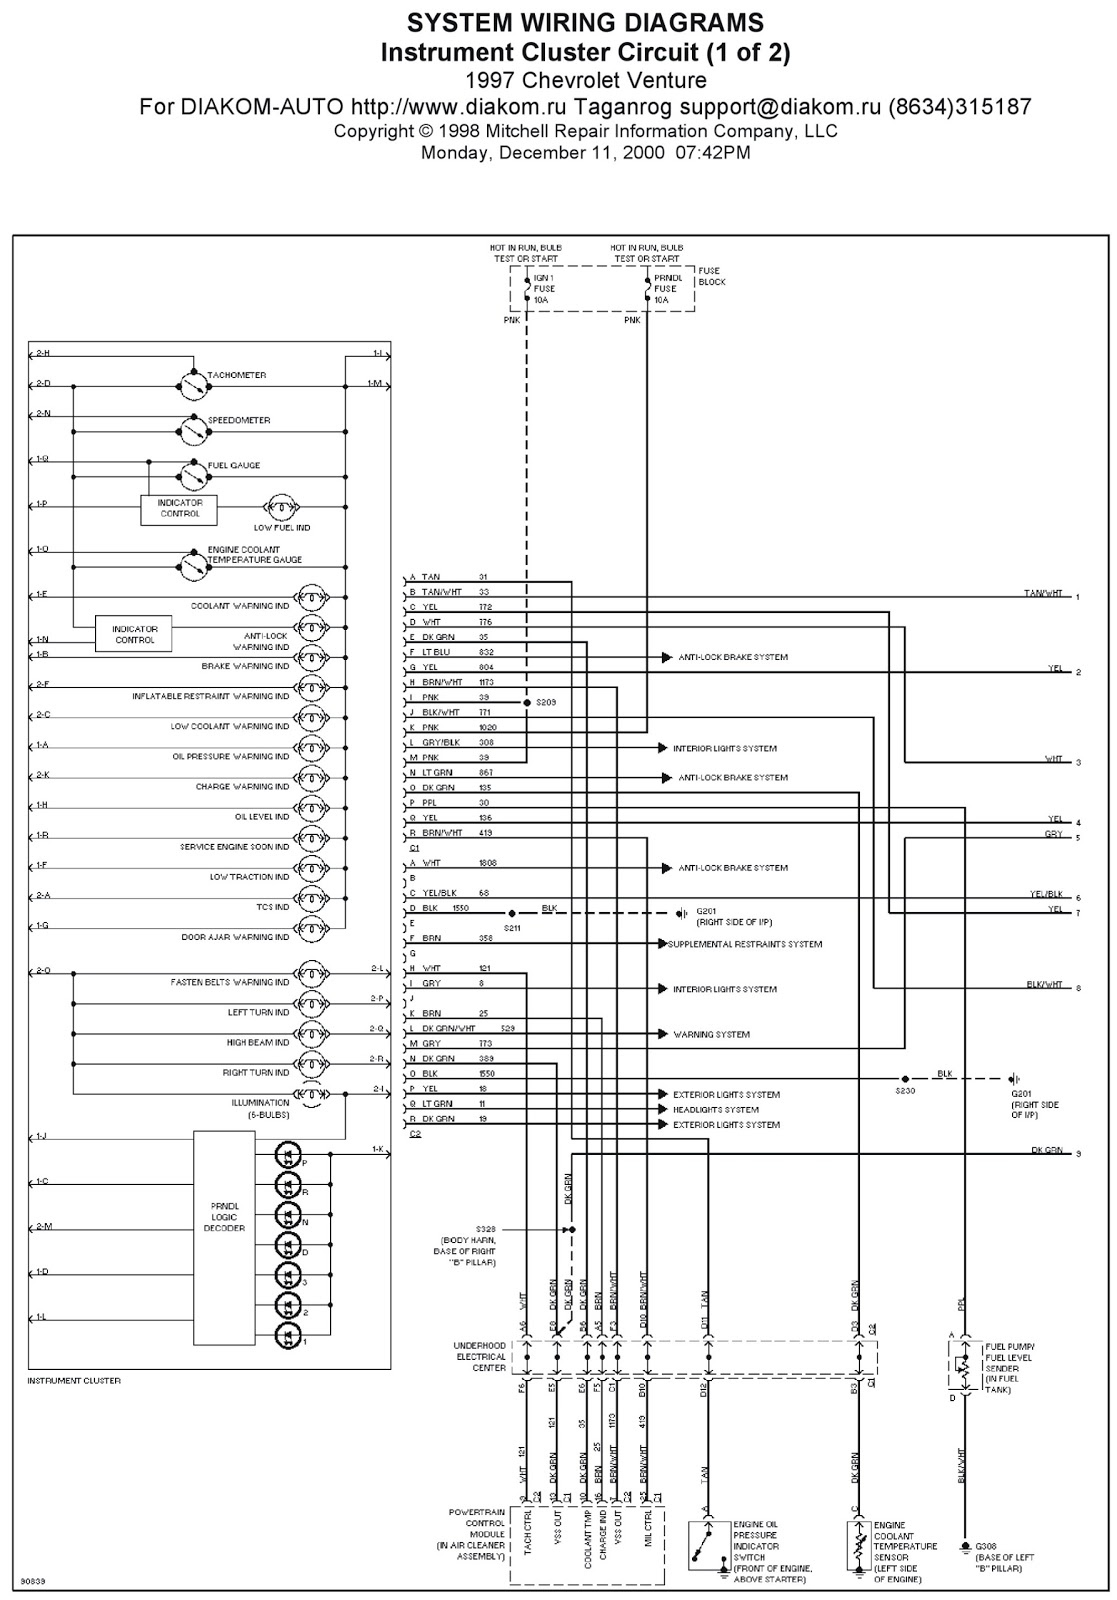 2002 chevy venture radio wiring diagram v manual: 1997 chevrolet venture instrument cluster ...